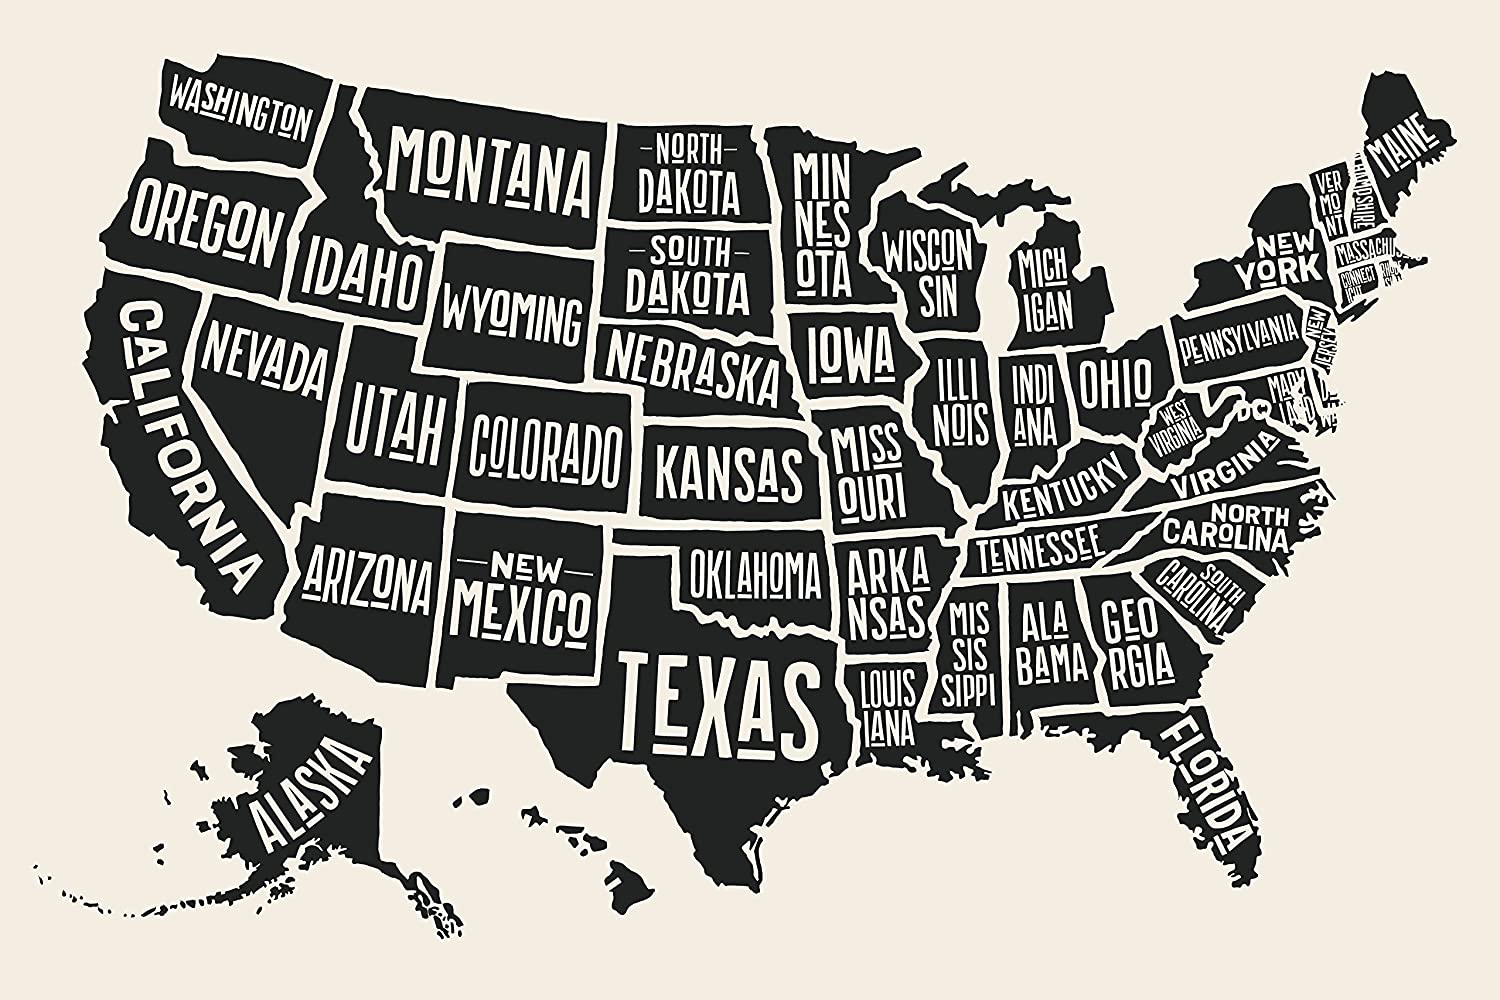 Black And White Usa Map Amazon.com: EzPosterPrints   USA Maps with States Details Posters